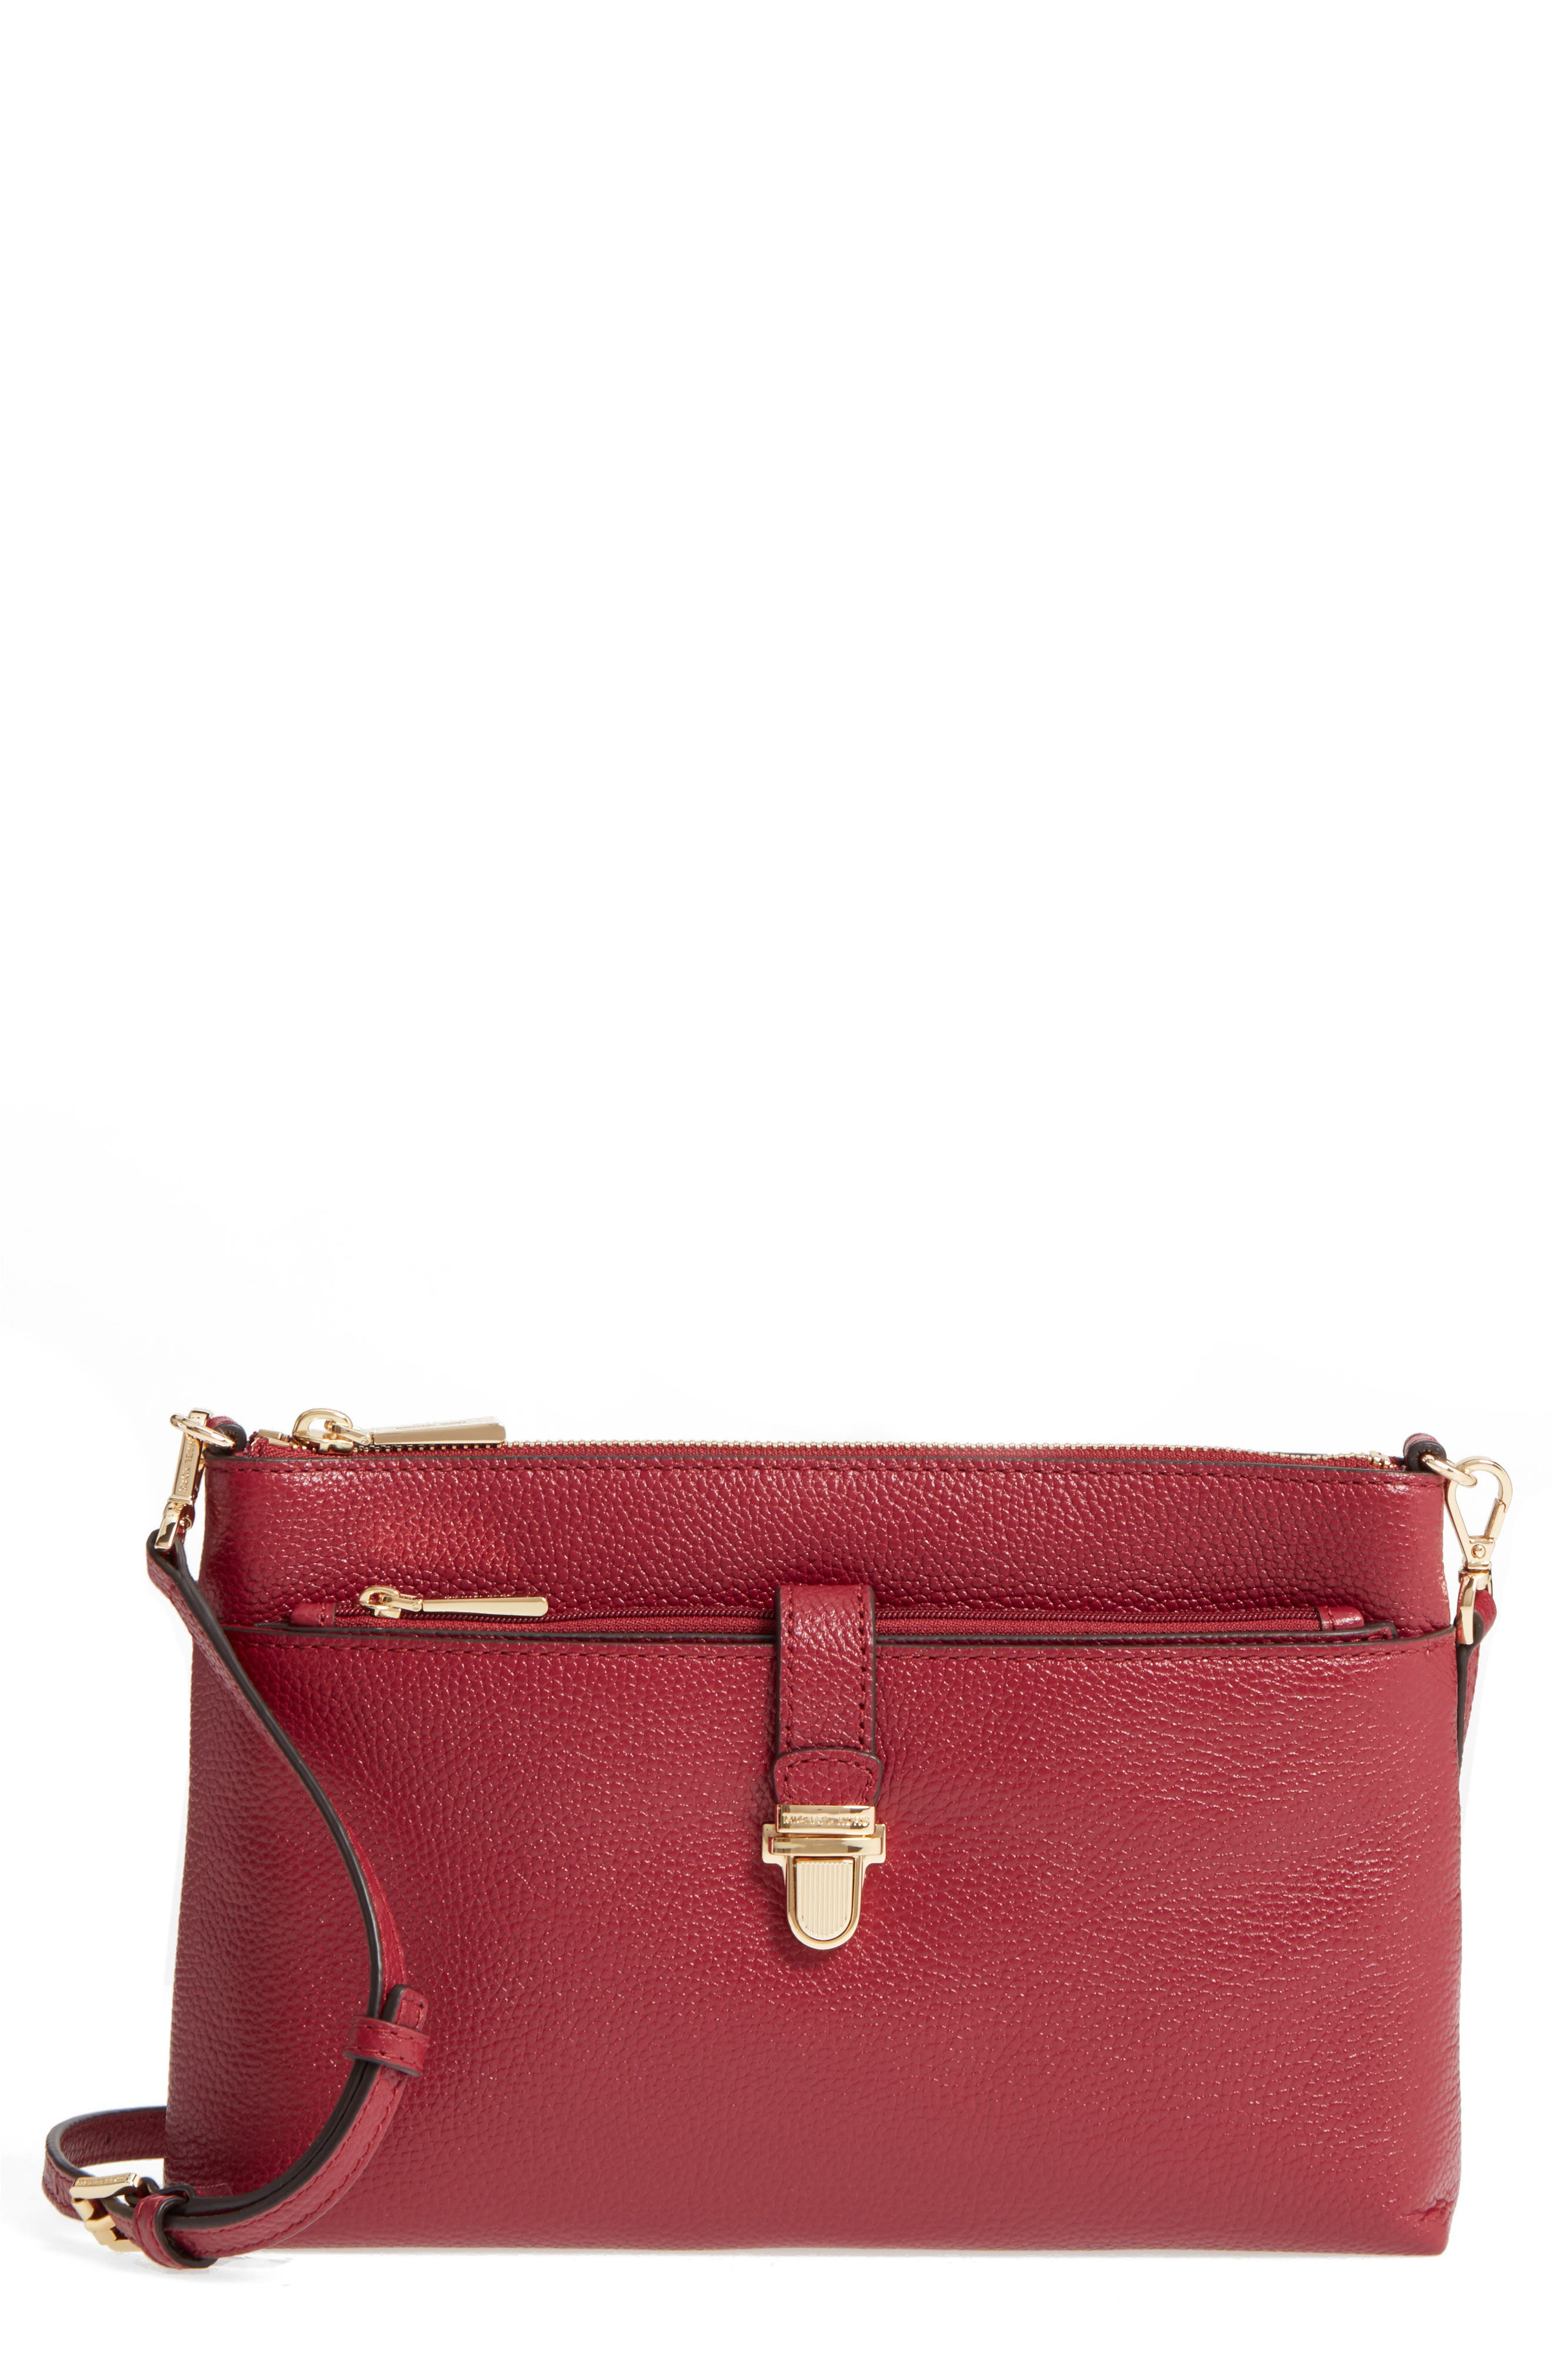 Large Mercer Leather Crossbody Bag,                             Main thumbnail 1, color,                             646